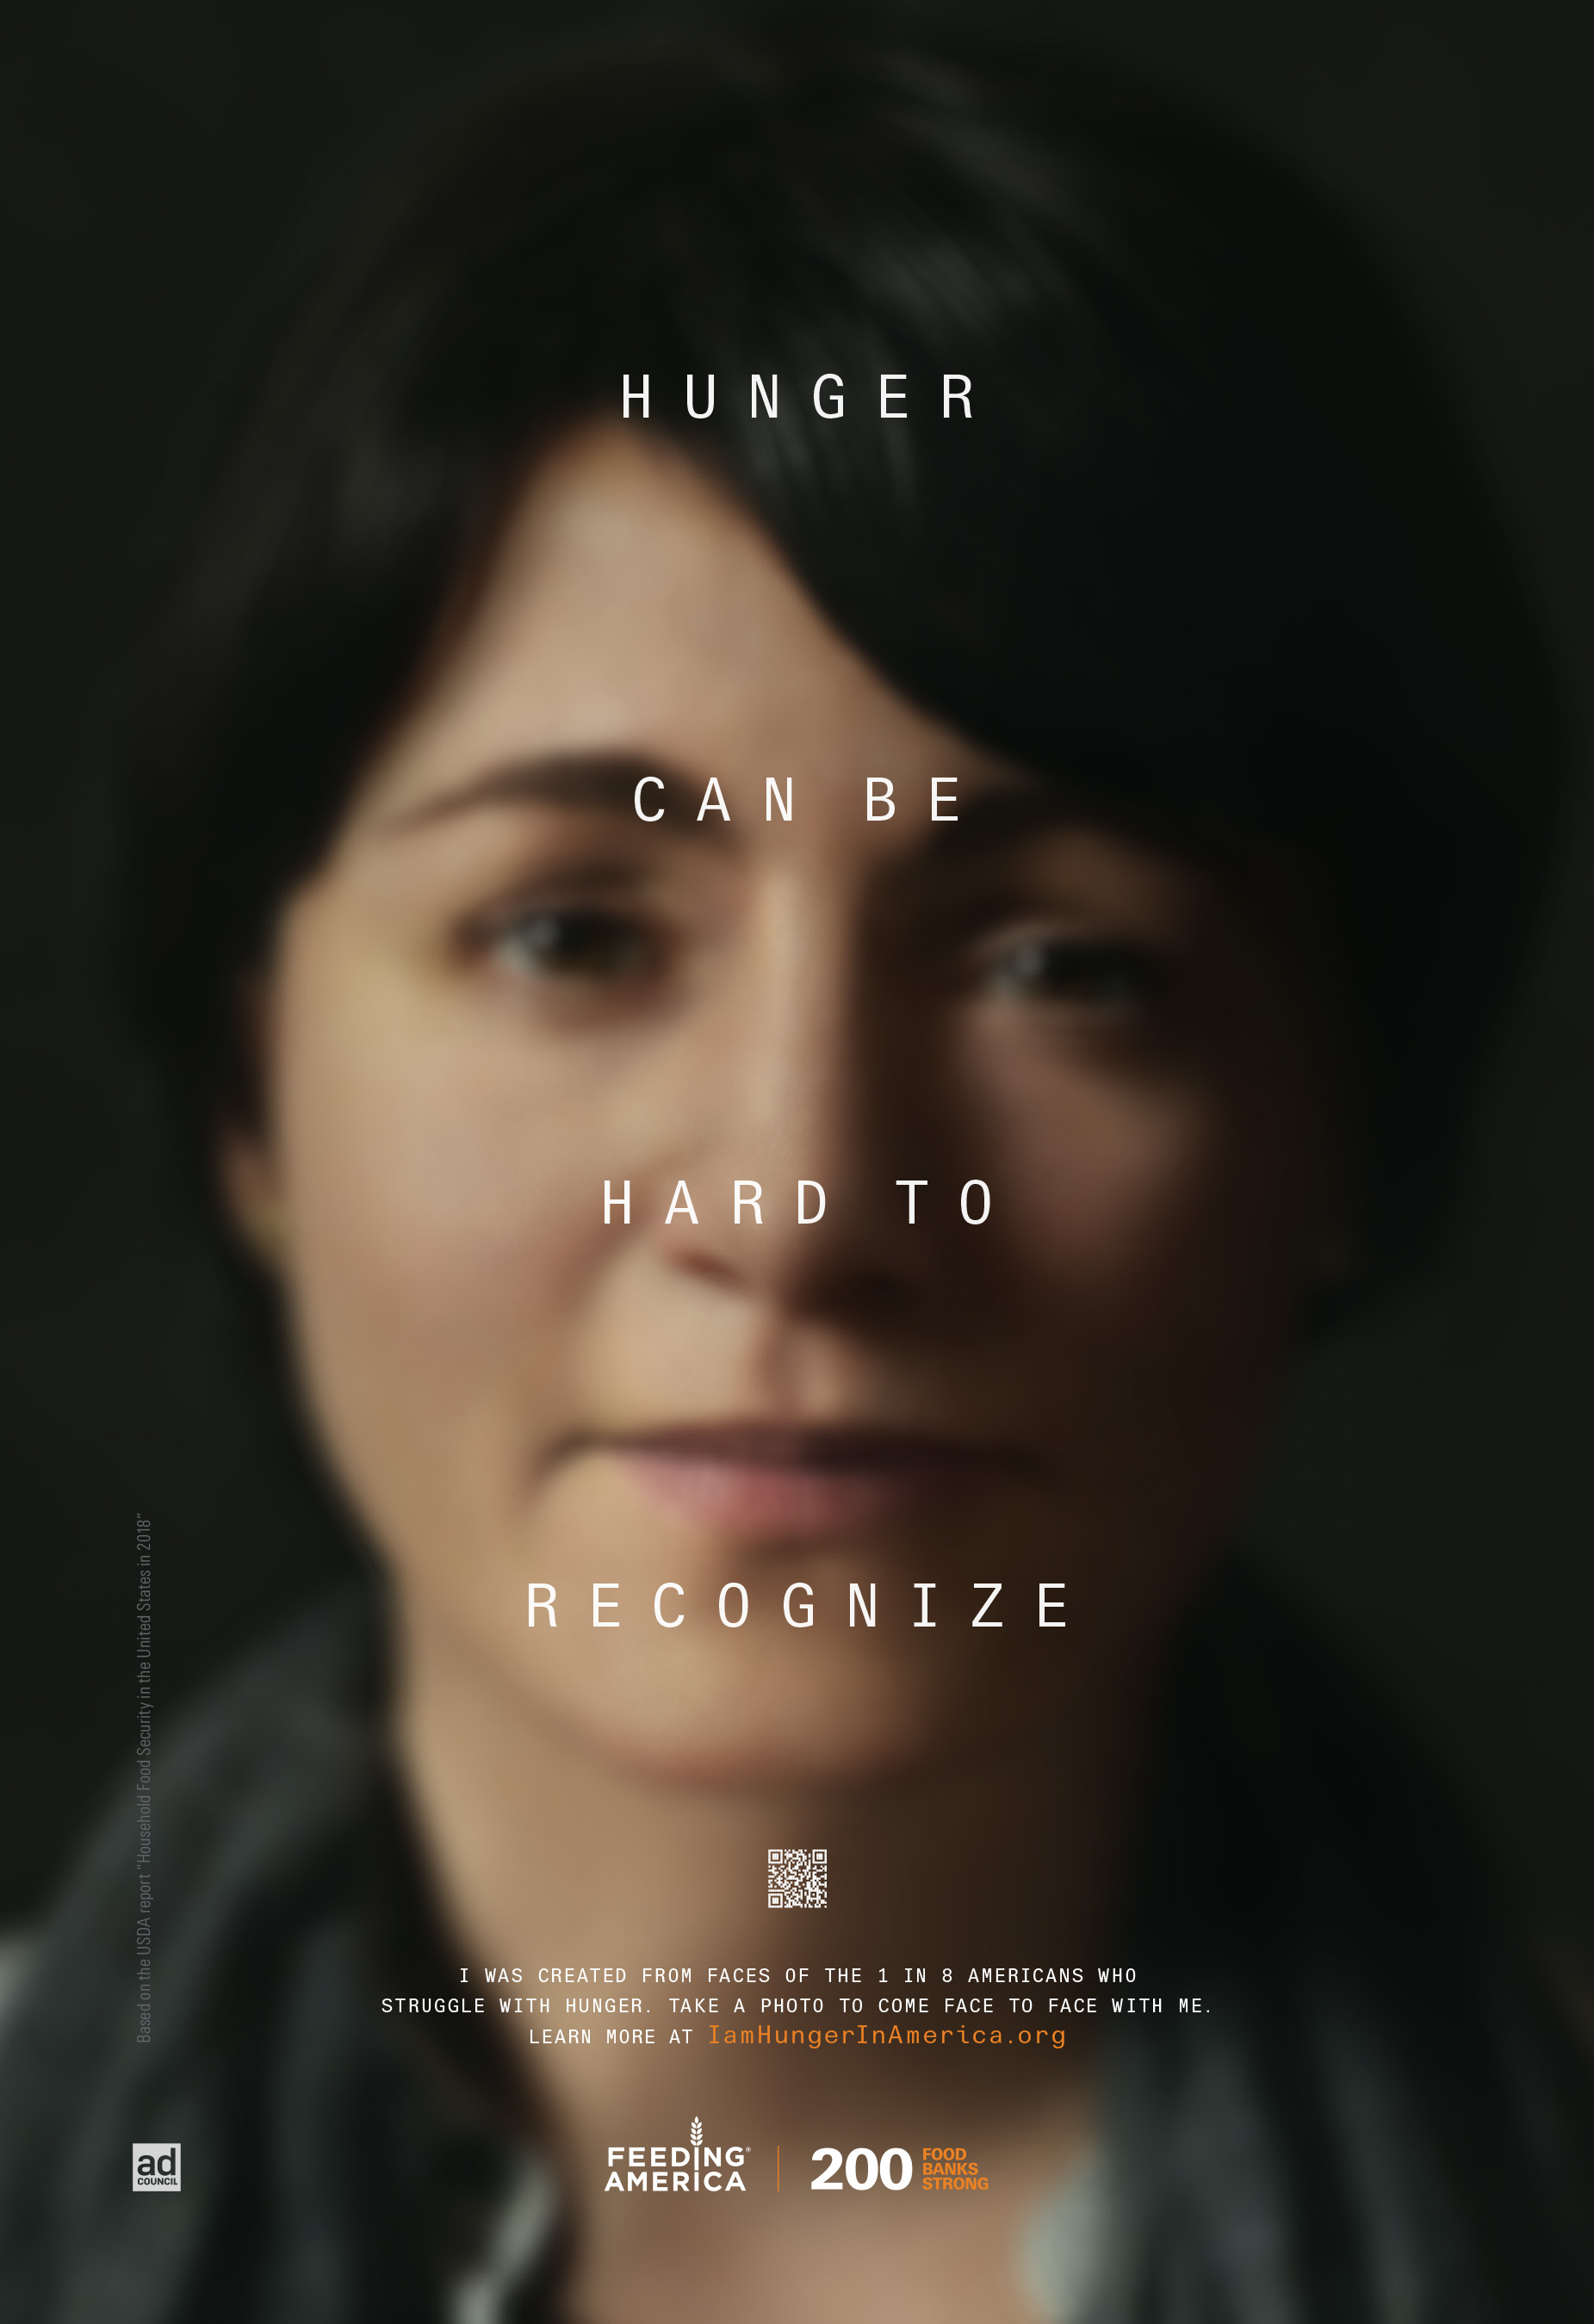 Feeding America challenges public perceptions of who faces hunger nationwide